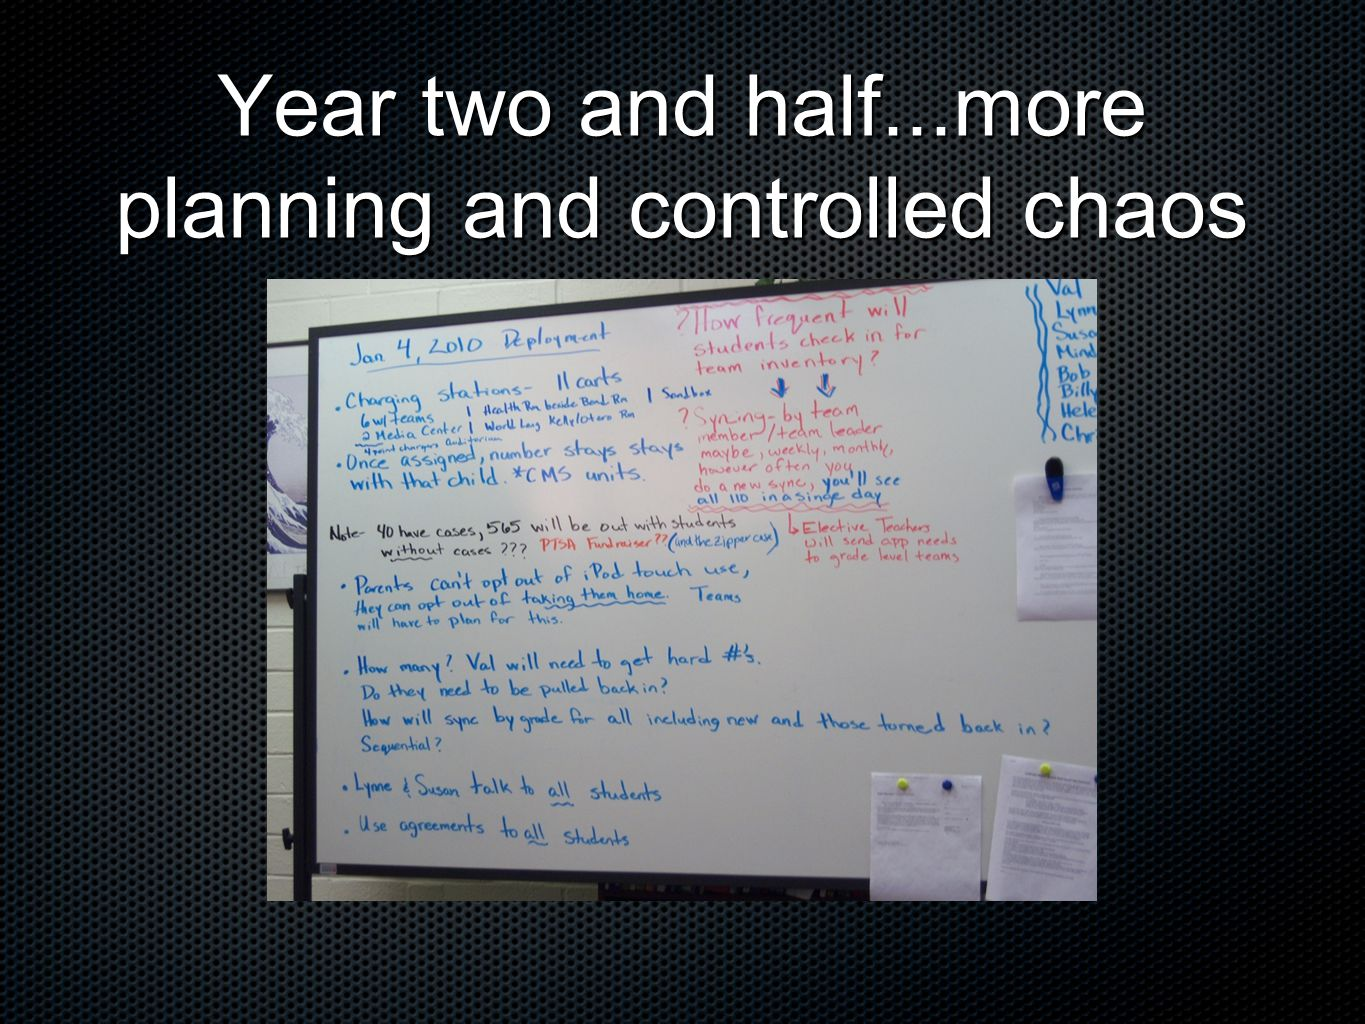 Year two and half...more planning and controlled chaos